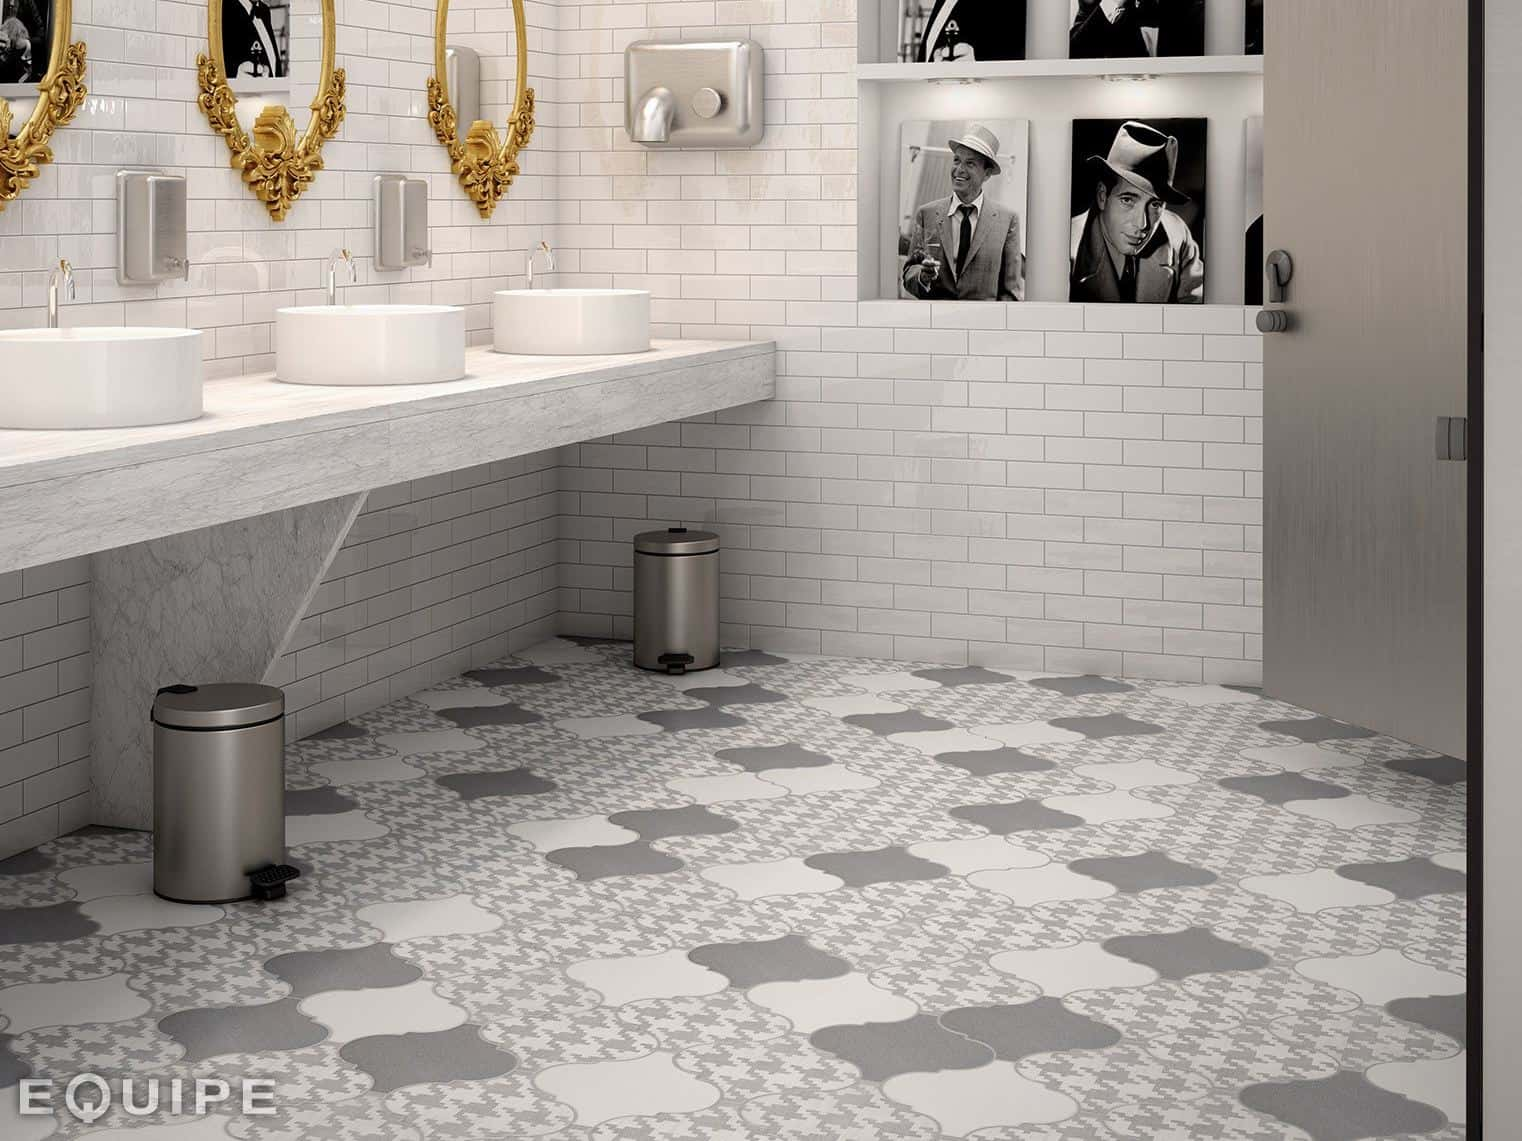 Uncategorized Tiles For The Floor 21 arabesque tile ideas for floor wall and backsplash view in gallery bathroom grey white 8 jpg